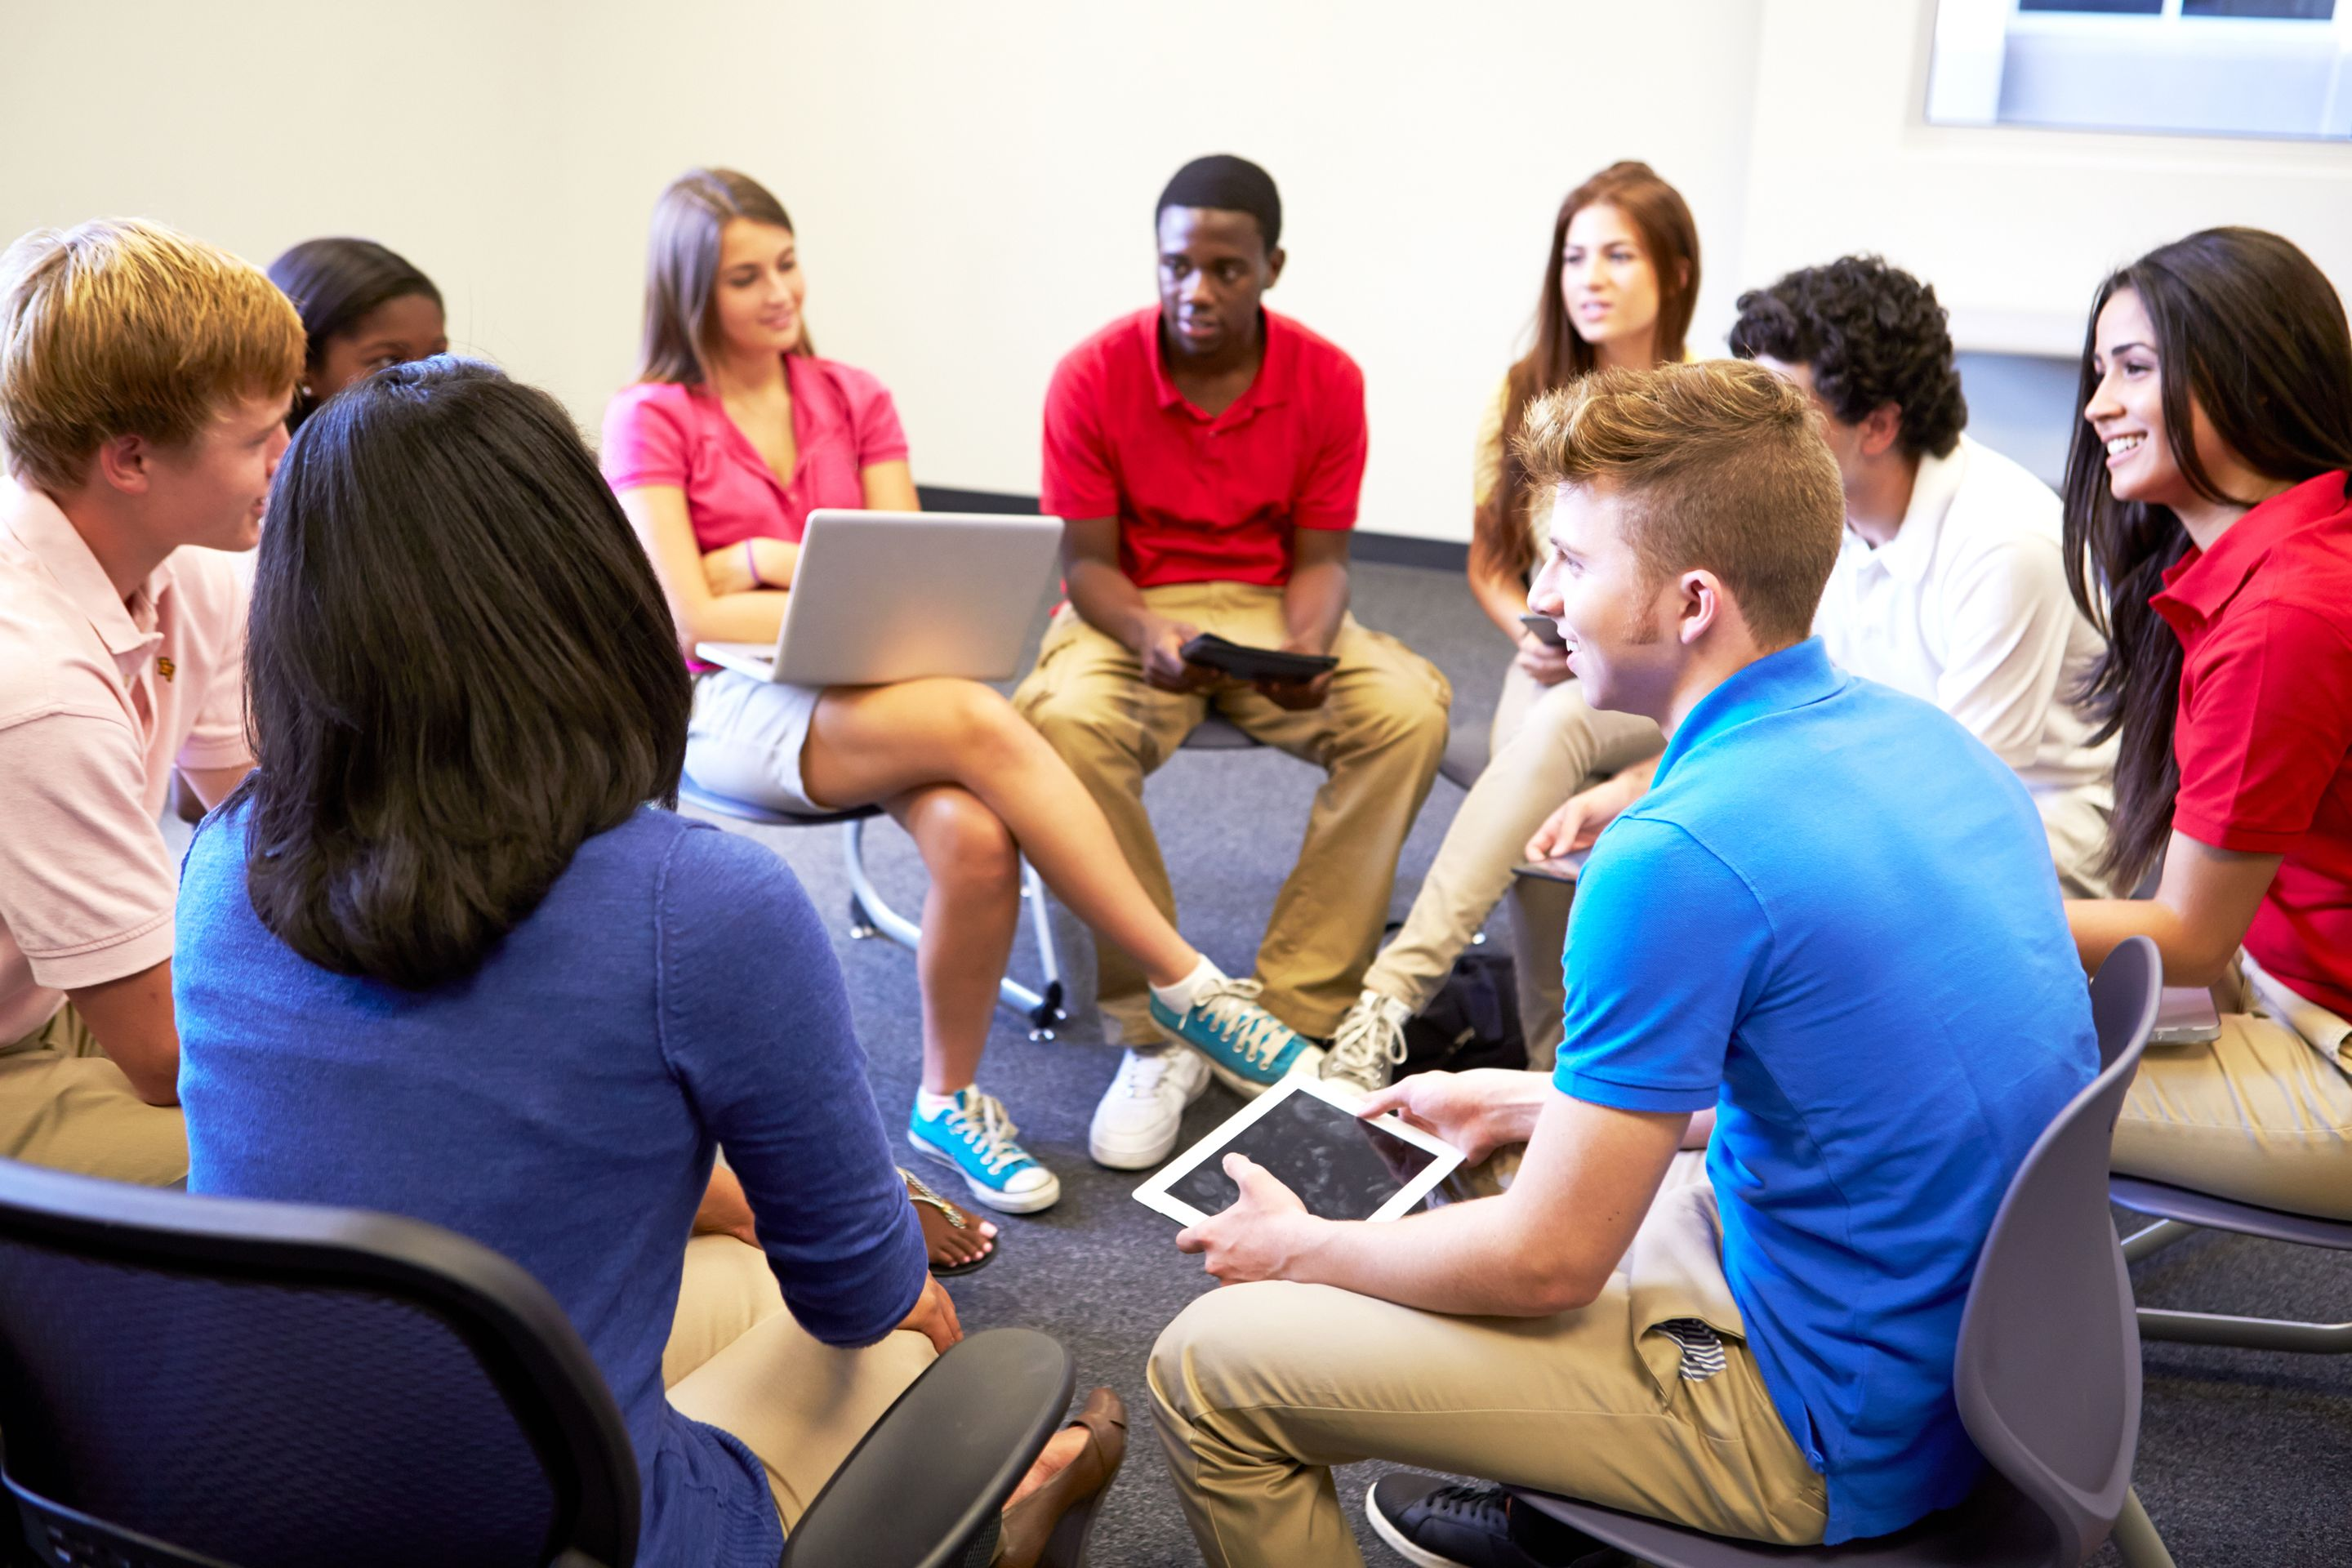 High school students sitting in a circle and taking part in a group discussion.